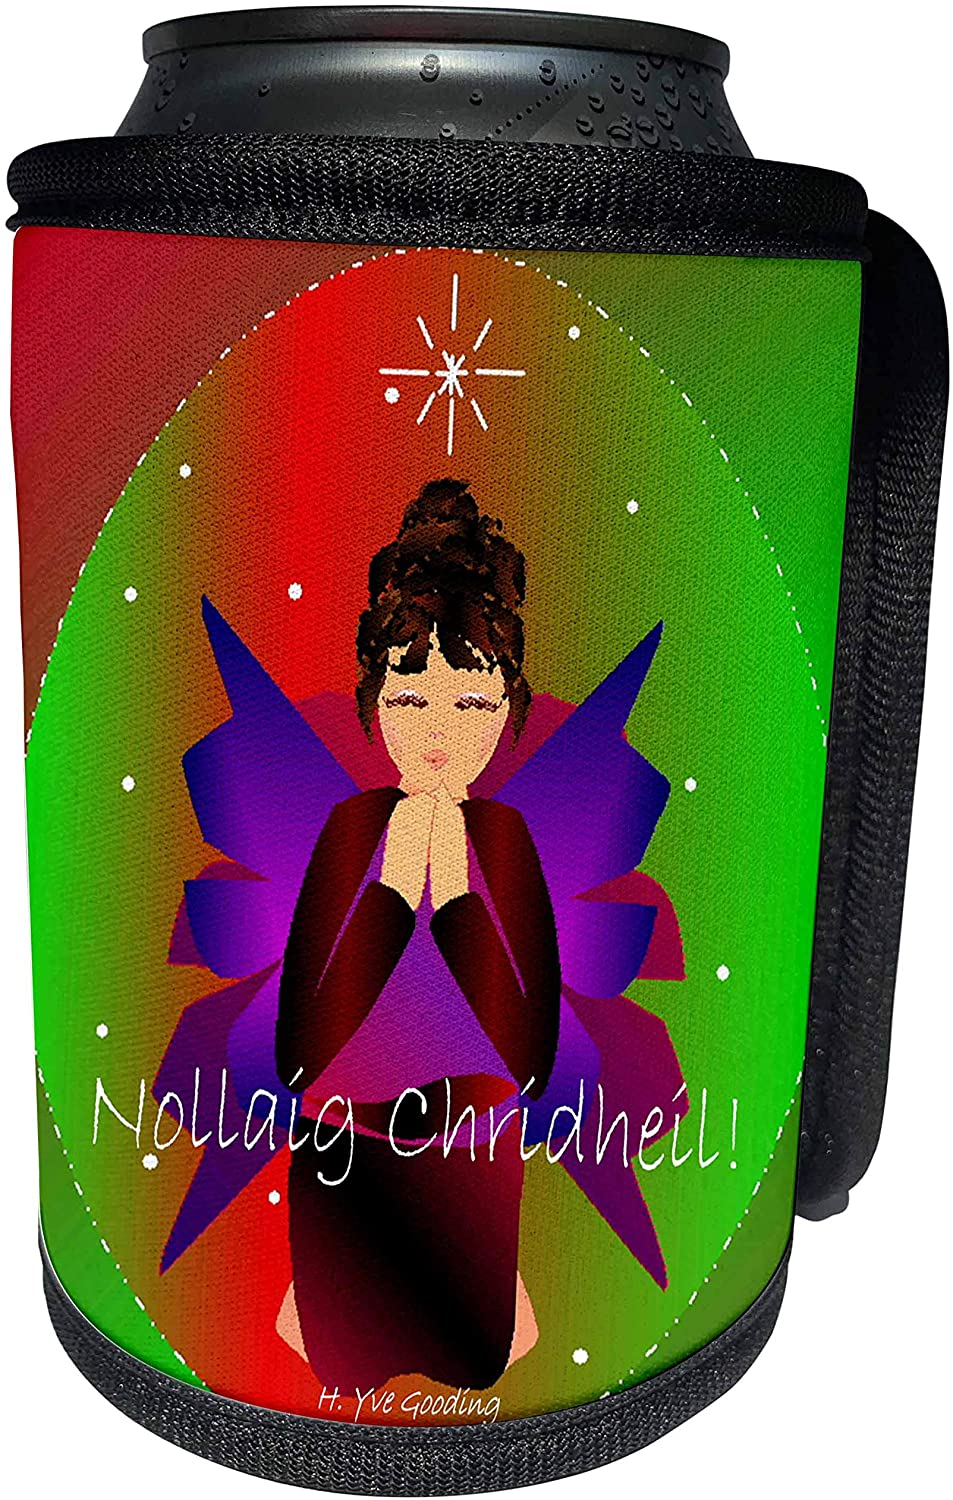 3dRose Yves Creations Angels - Christmas Angel Baby Girl Praying With Nollaig Chridheil Text - Can Cooler Bottle Wrap (cc_6957_1)